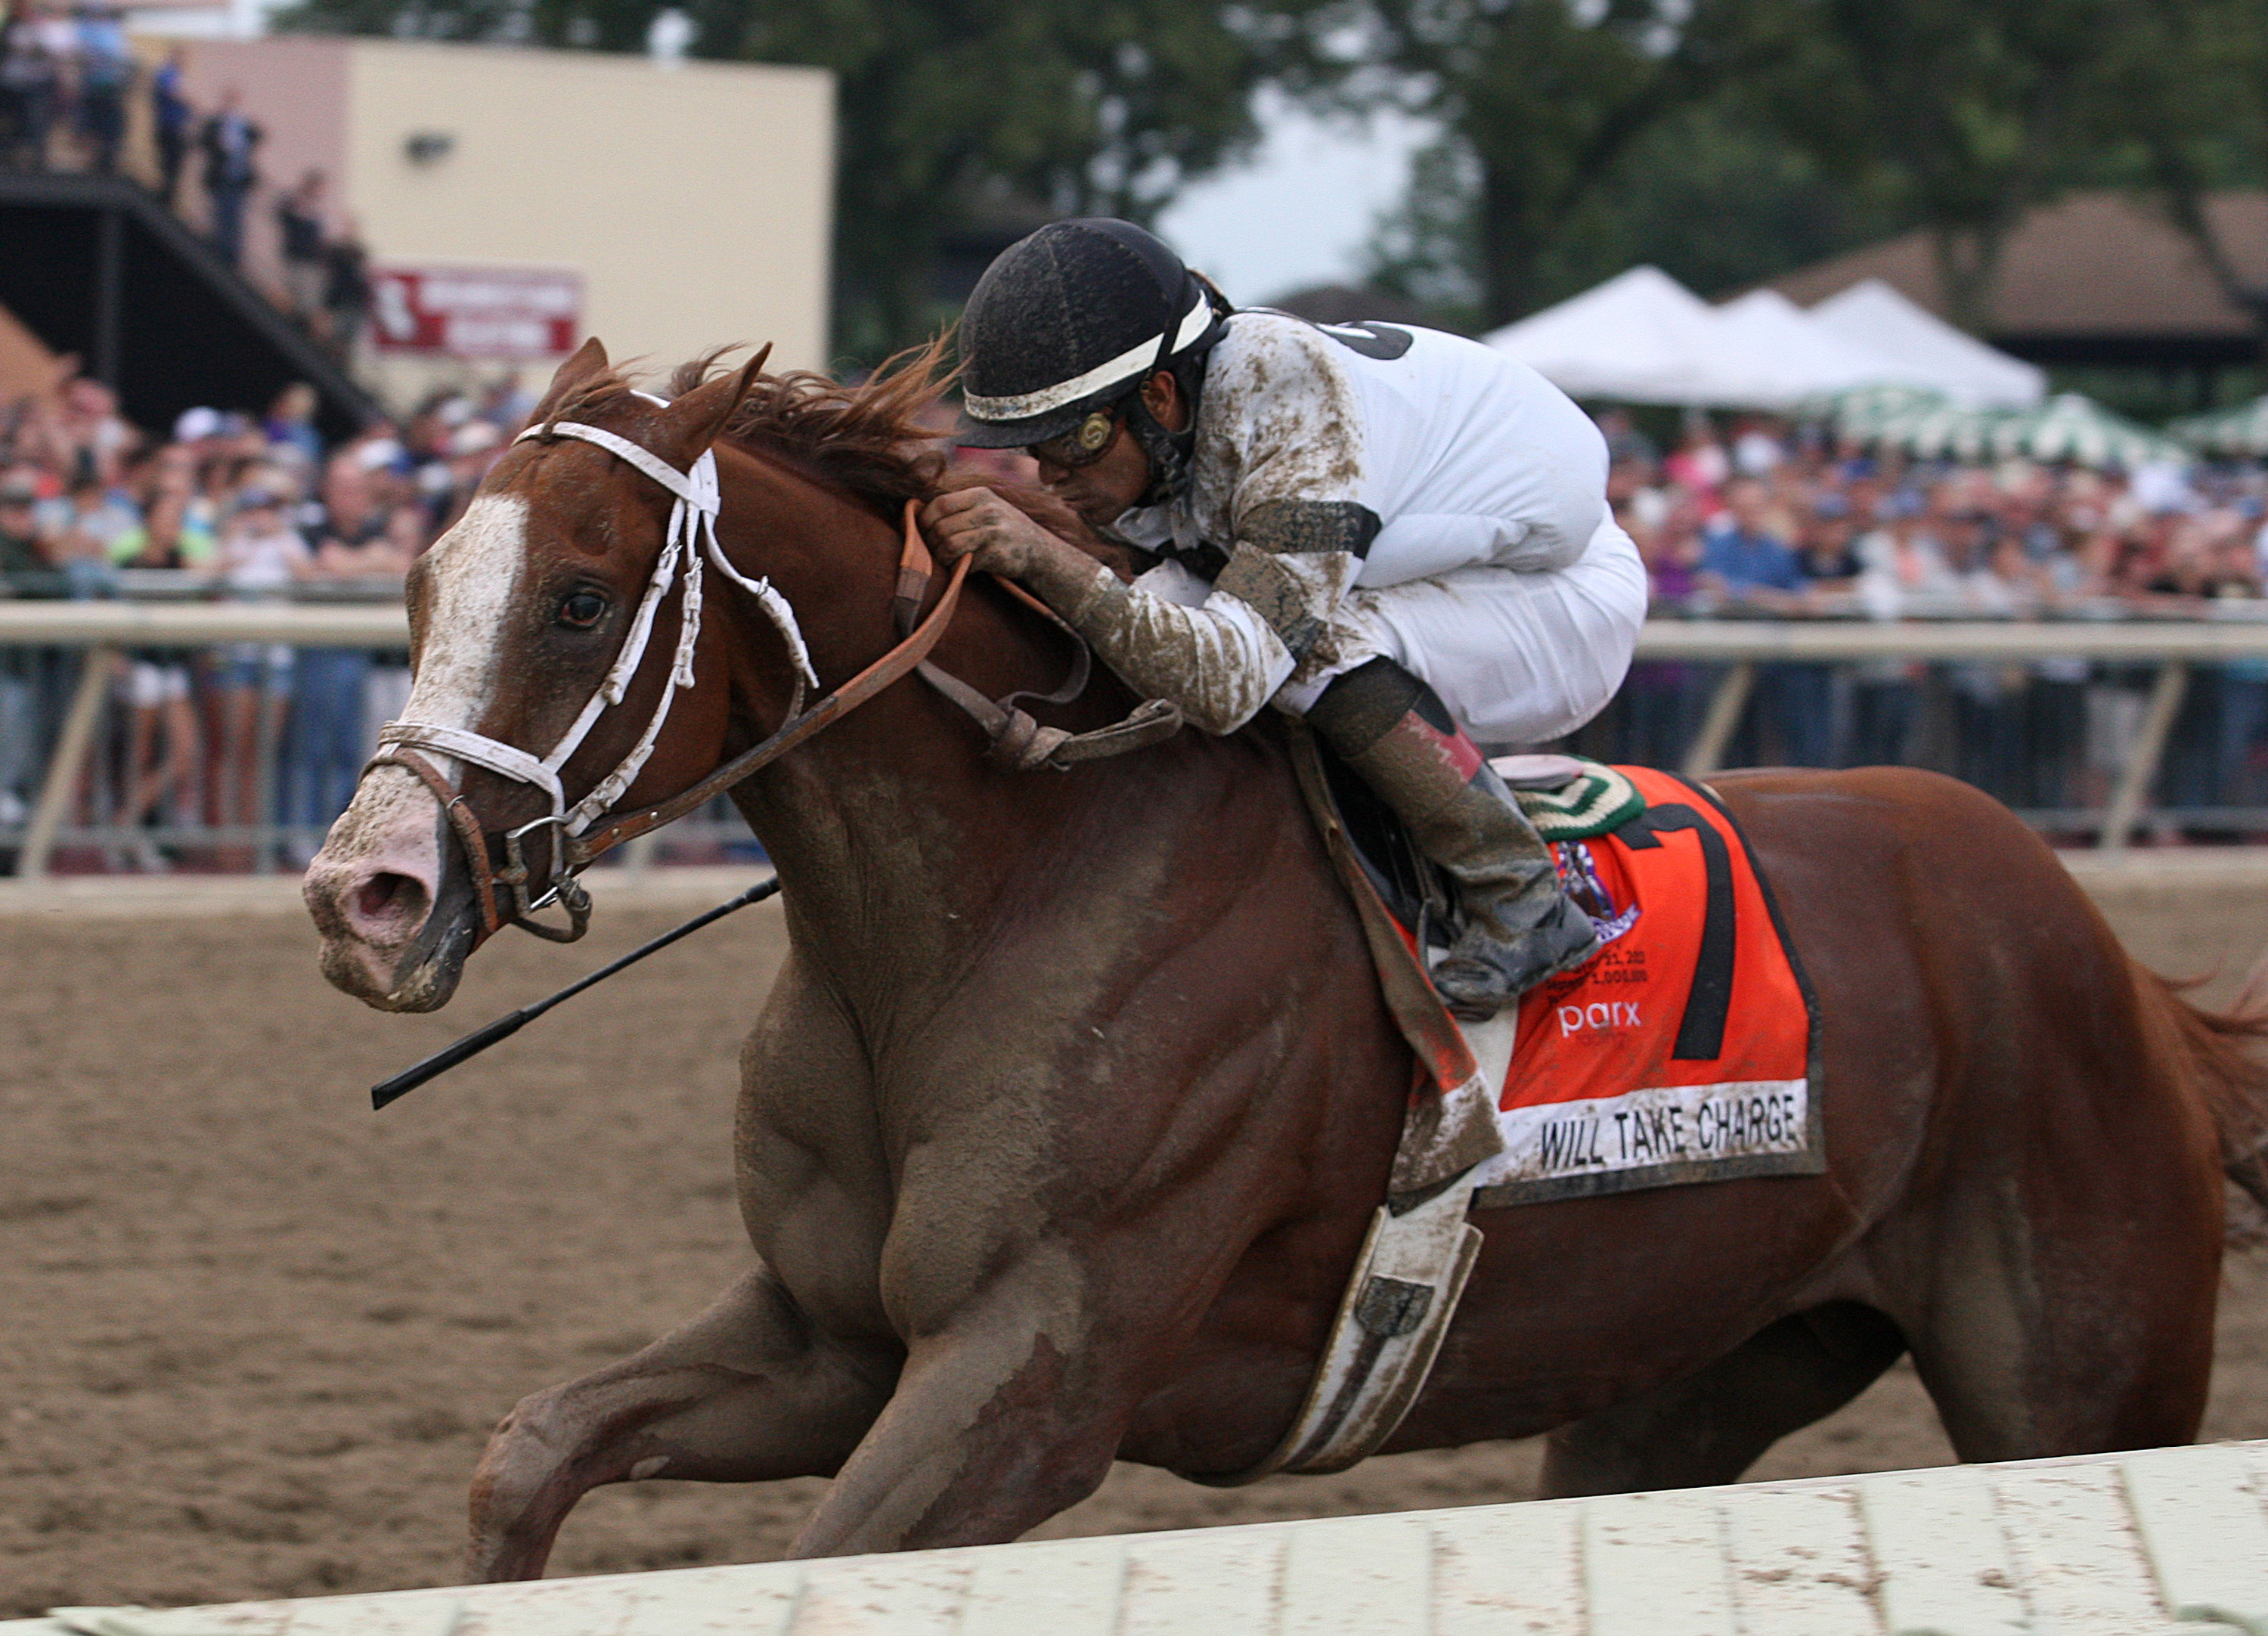 Tightend touchdown upsets as longshots rule parx dash - ptha and demonstrated